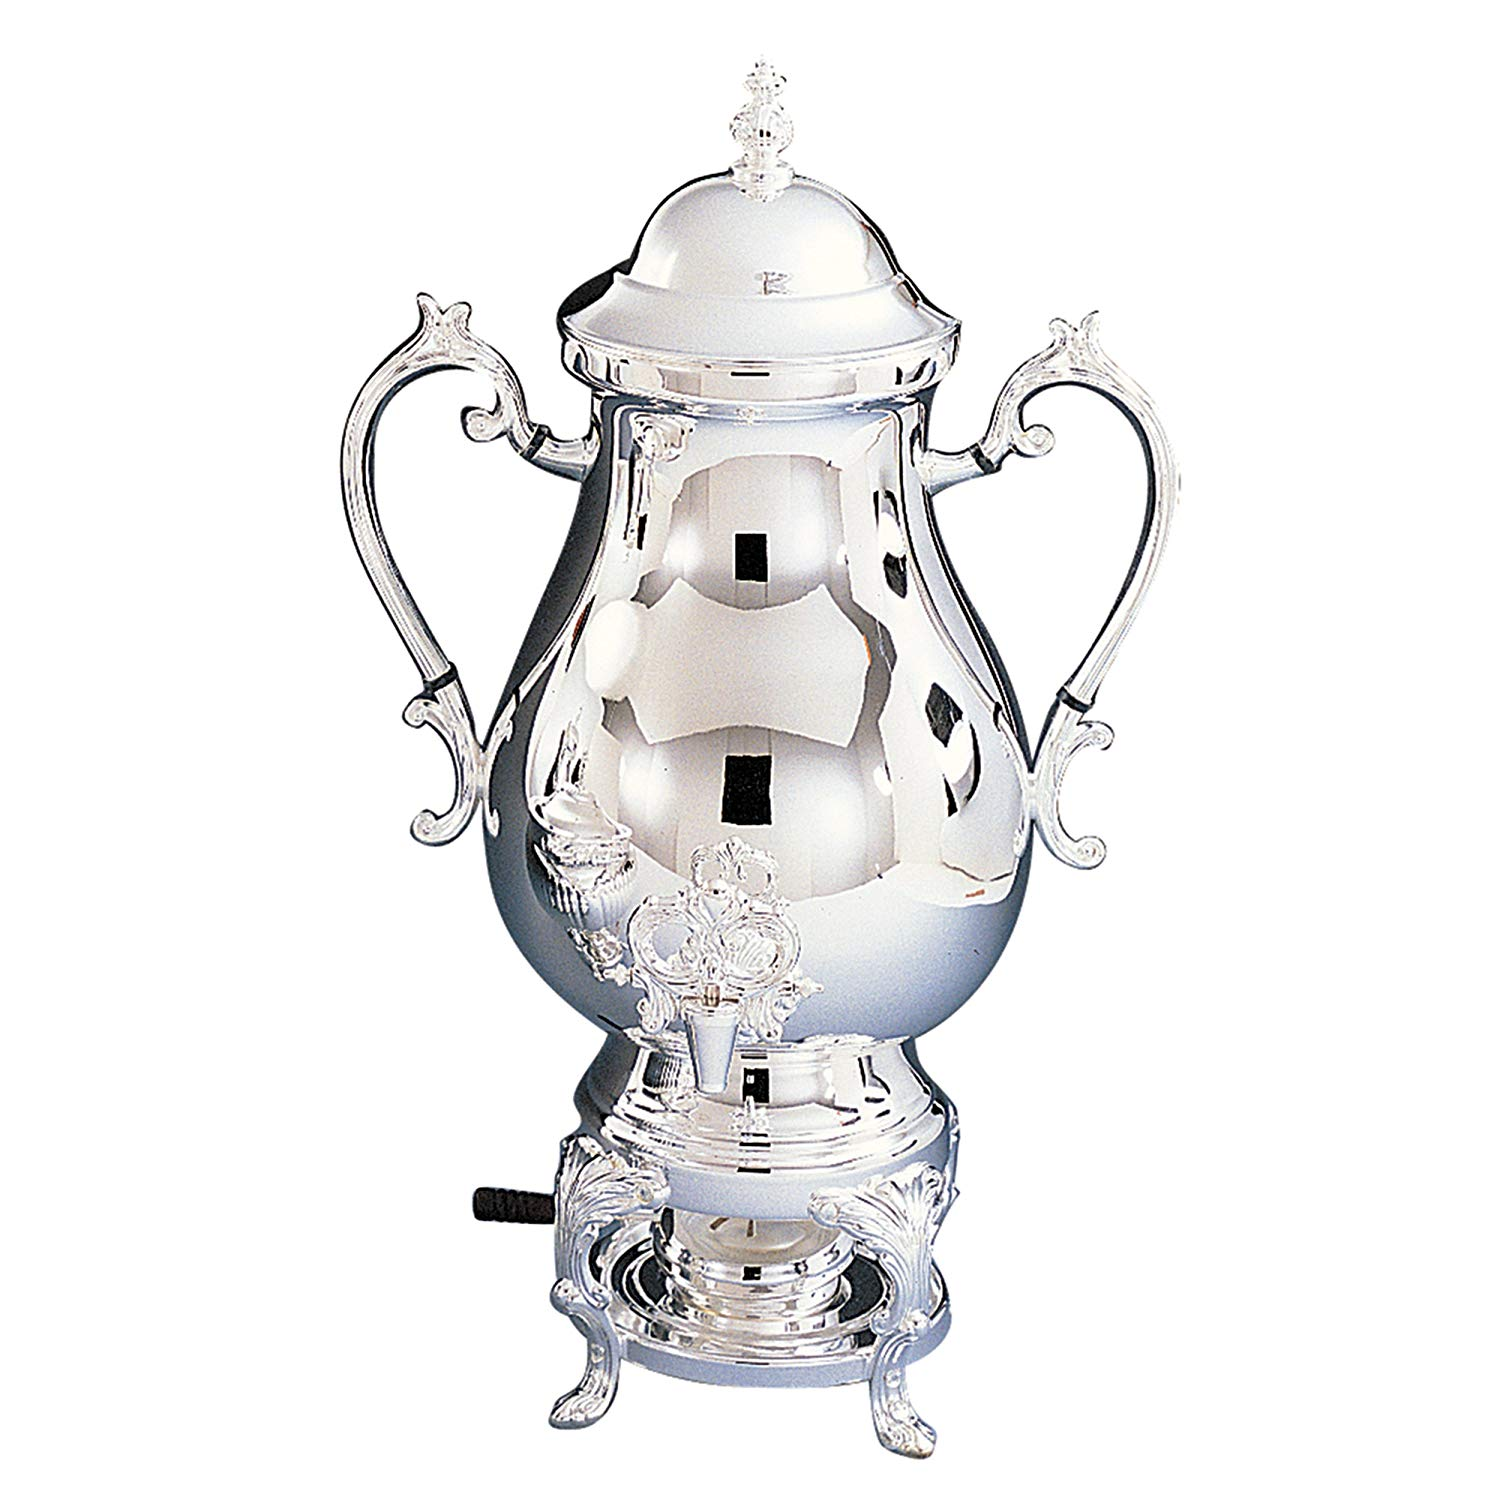 Elegance Silver 89725 Silver Plated Coffee Urn, 50 Cup